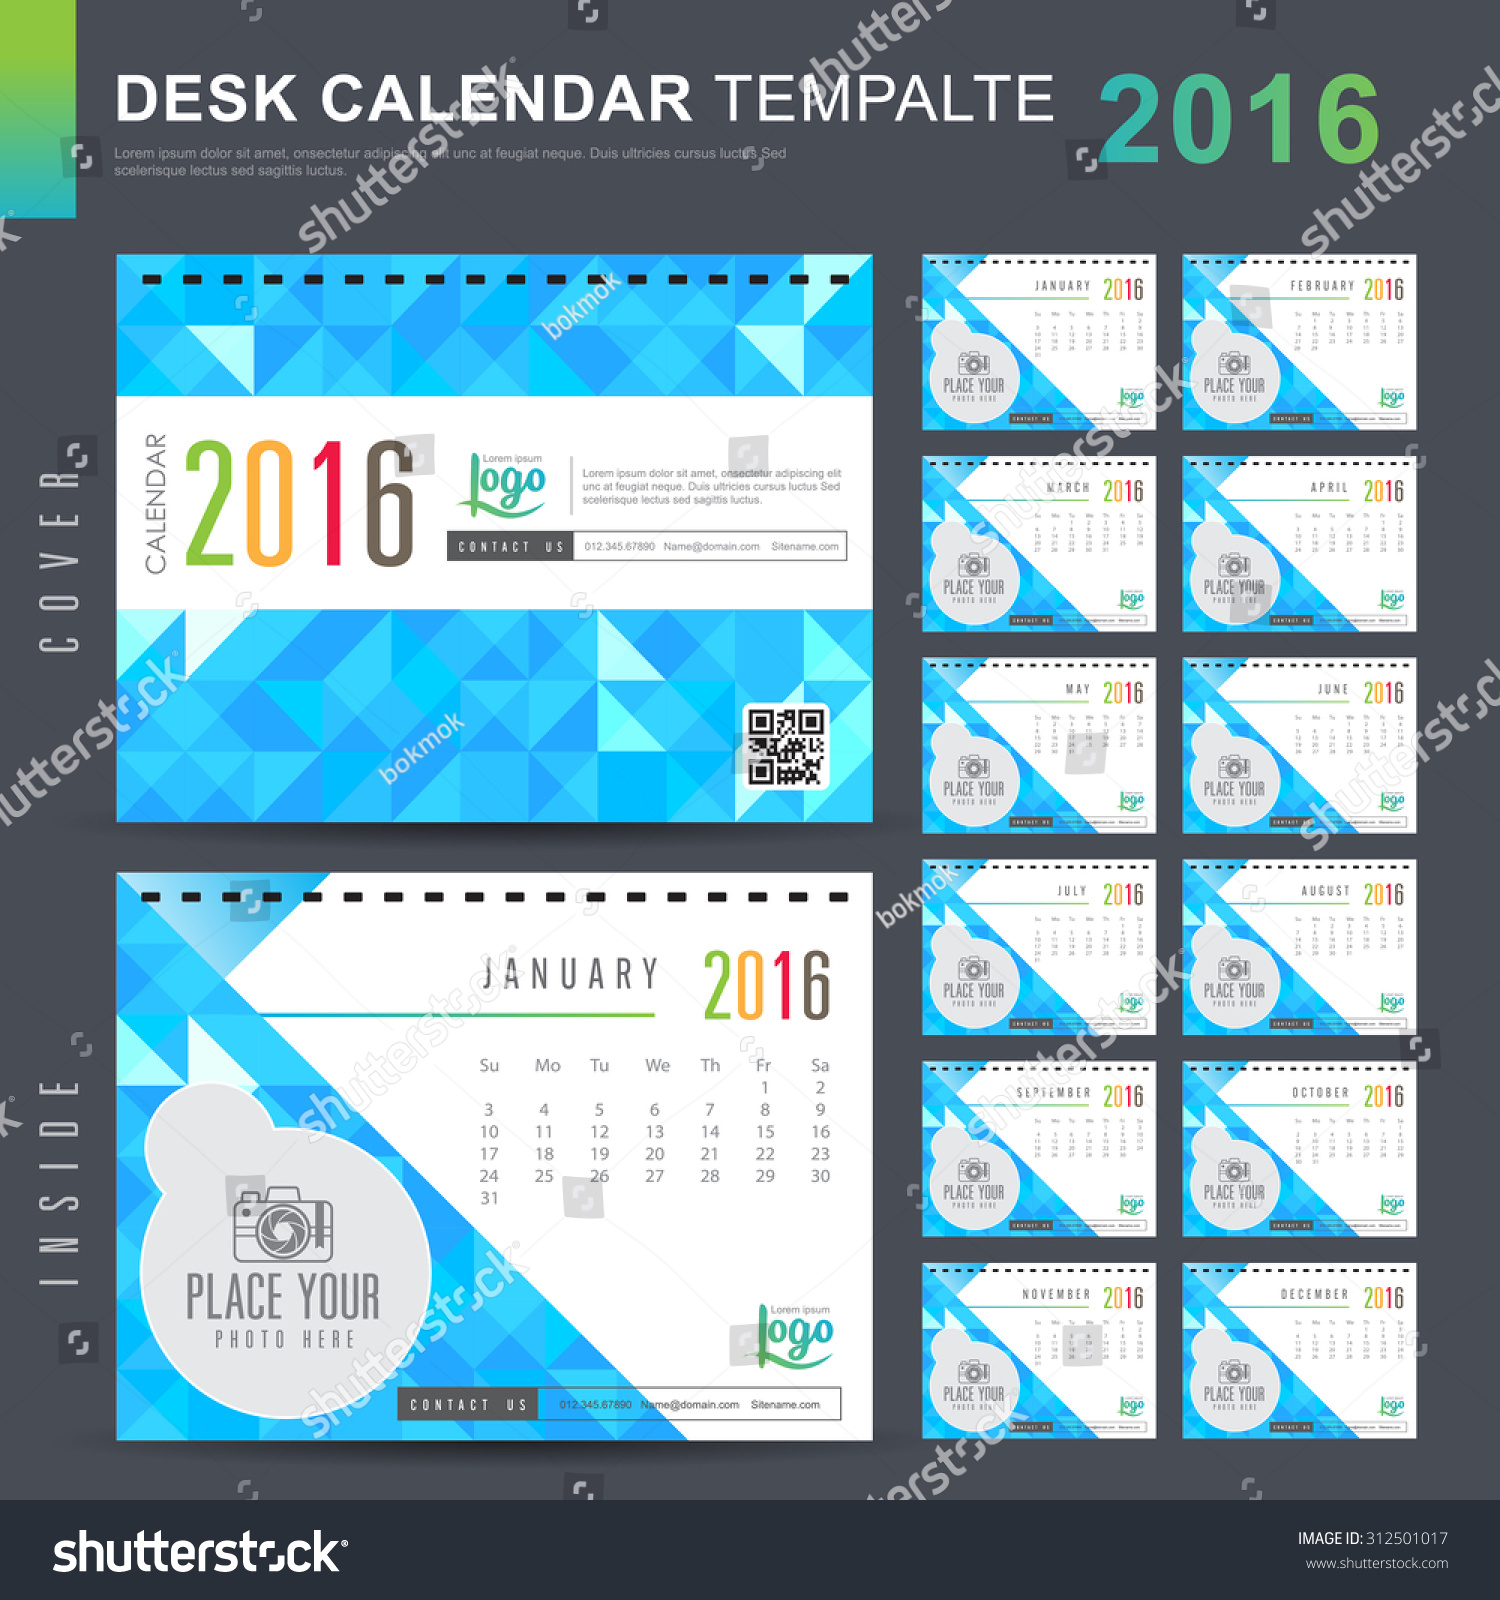 Table Calendar 2016 : Desk calendar vector design template stock